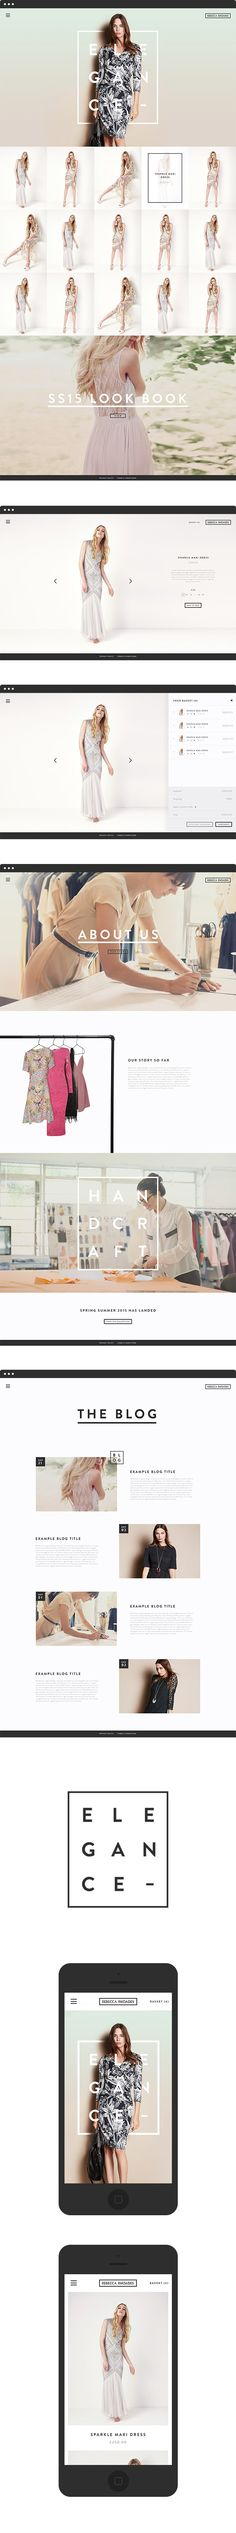 A minimal e-commerce website for fashion designer Rebecca Rhoades by Oliver Harris